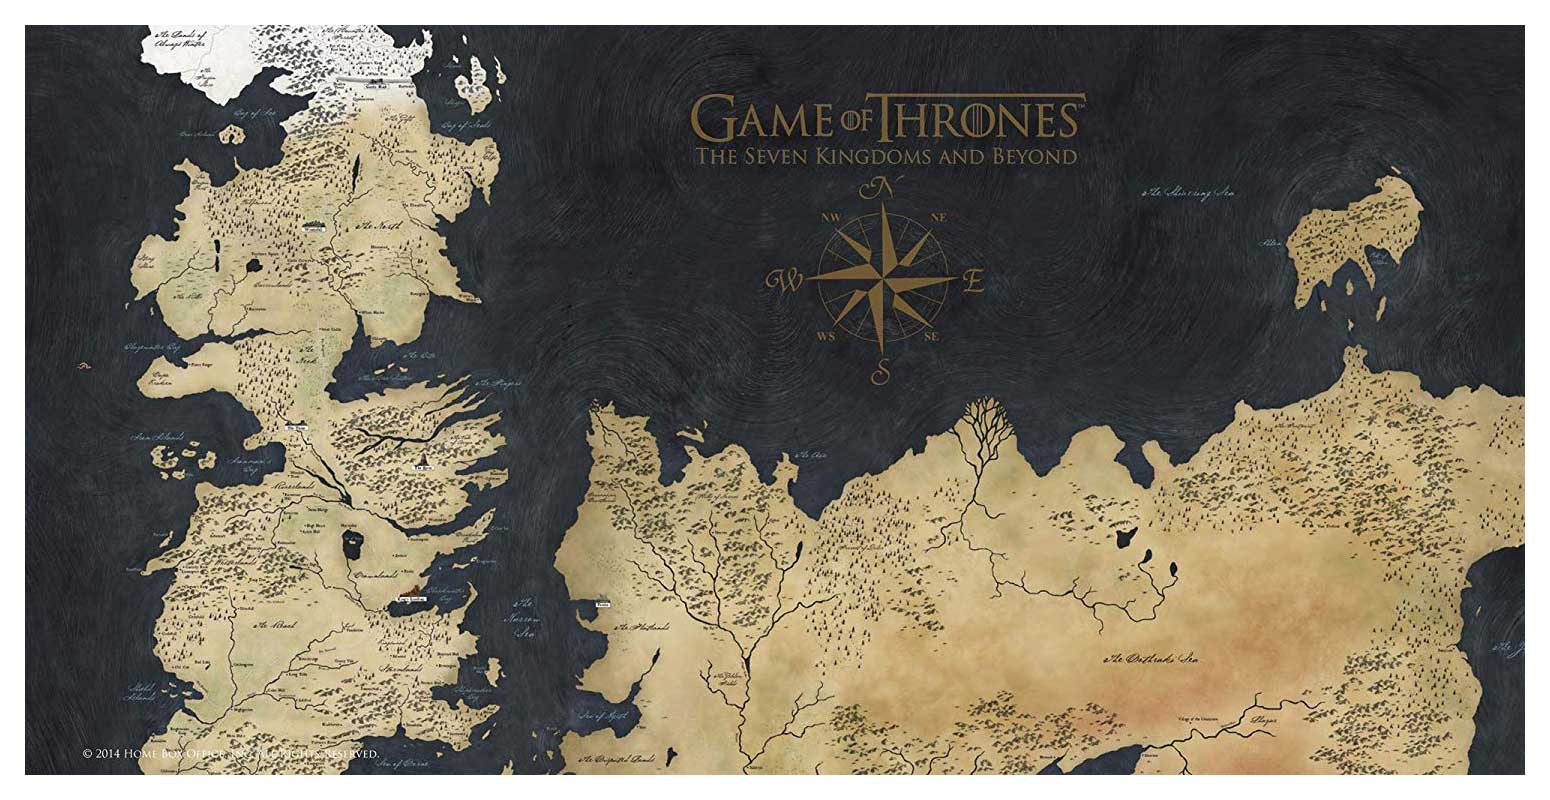 Details about Game of Thrones Westeros Map Tempered Gl Poster on a clash of kings, winterfell map, narnia map, the kingsroad, a storm of swords, camelot map, the pointy end, a game of thrones, sons of anarchy, guild wars 2 map, a game of thrones: genesis, a golden crown, themes in a song of ice and fire, works based on a song of ice and fire, justified map, got map, dallas map, a game of thrones collectible card game, clash of kings map, valyria map, jericho map, fire and blood, the prince of winterfell, game of thrones - season 1, bloodline map, star trek map, game of thrones - season 2, tales of dunk and egg, lord snow, walking dead map, a storm of swords map, spooksville map, downton abbey map, jersey shore map, winter is coming, world map, gendry map, qarth map,